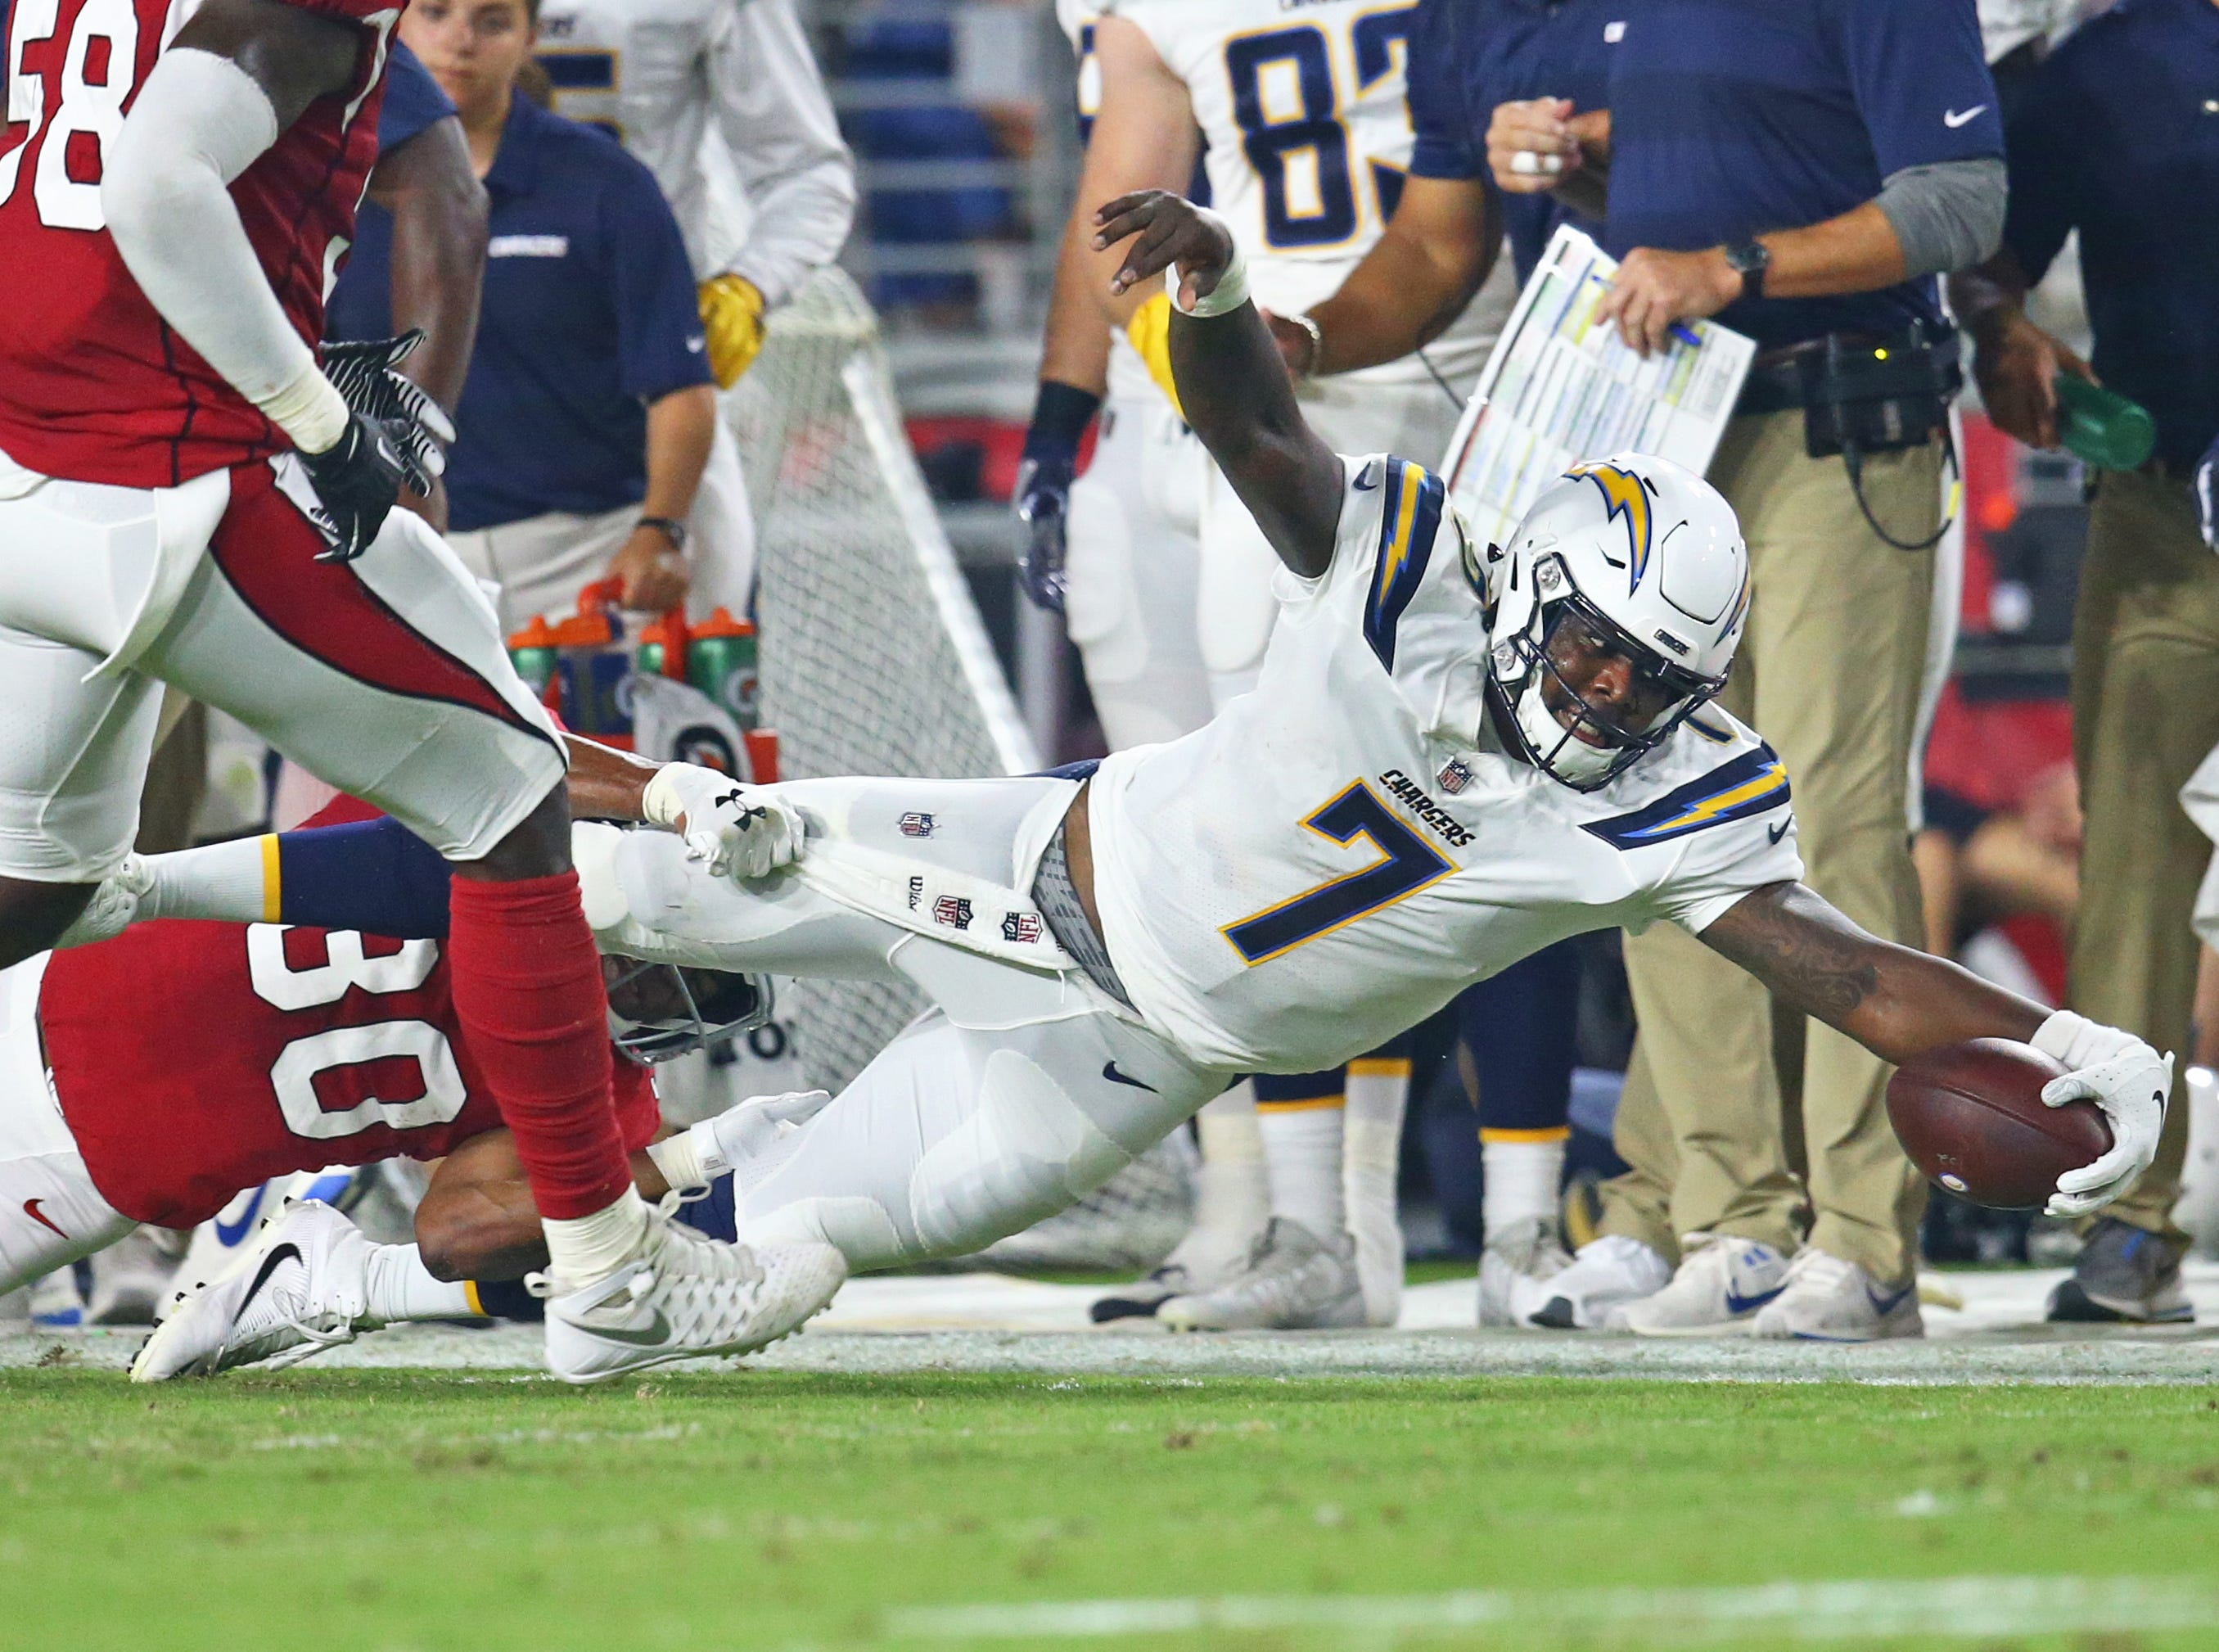 Los Angeles Chargers quarterback Cardale Jones (7) dives for yardage against the Arizona Cardinals during a preseason game at University of Phoenix Stadium.